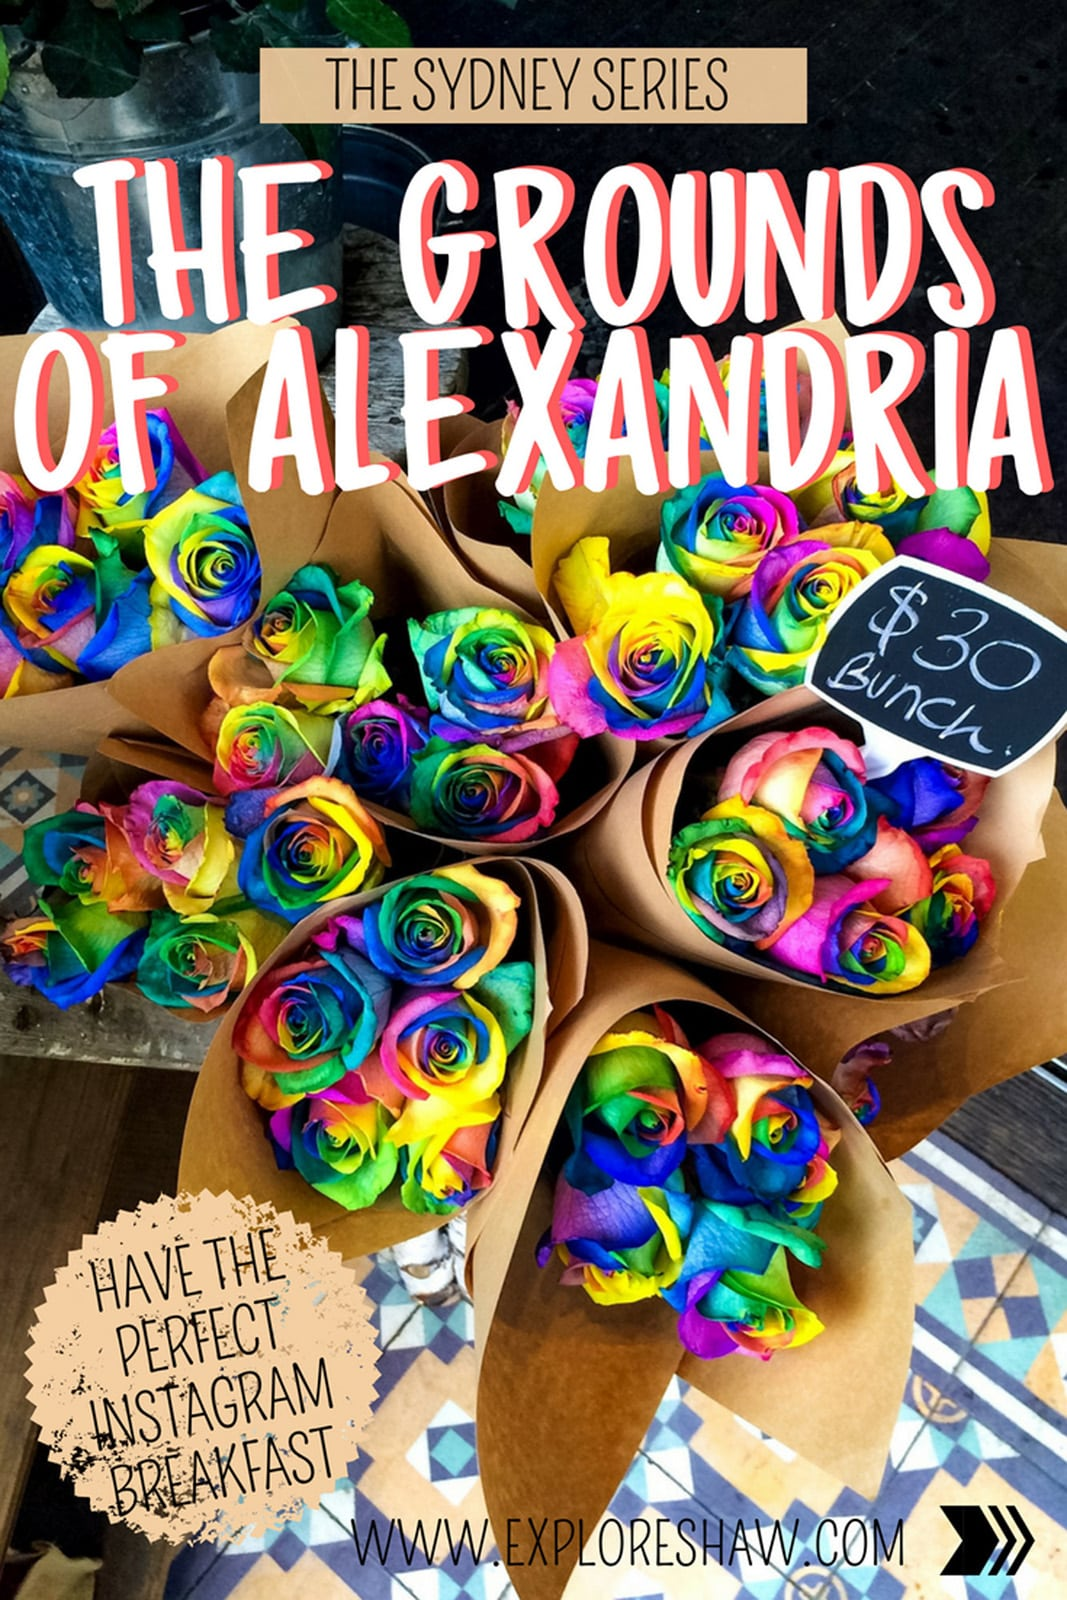 For one of the most unique and popular dining options in Sydney you need to check out The Grounds of Alexandria. It isn't just a quirky cafe, it is truly an experience. #Australia #NewSouthWales #Sydney